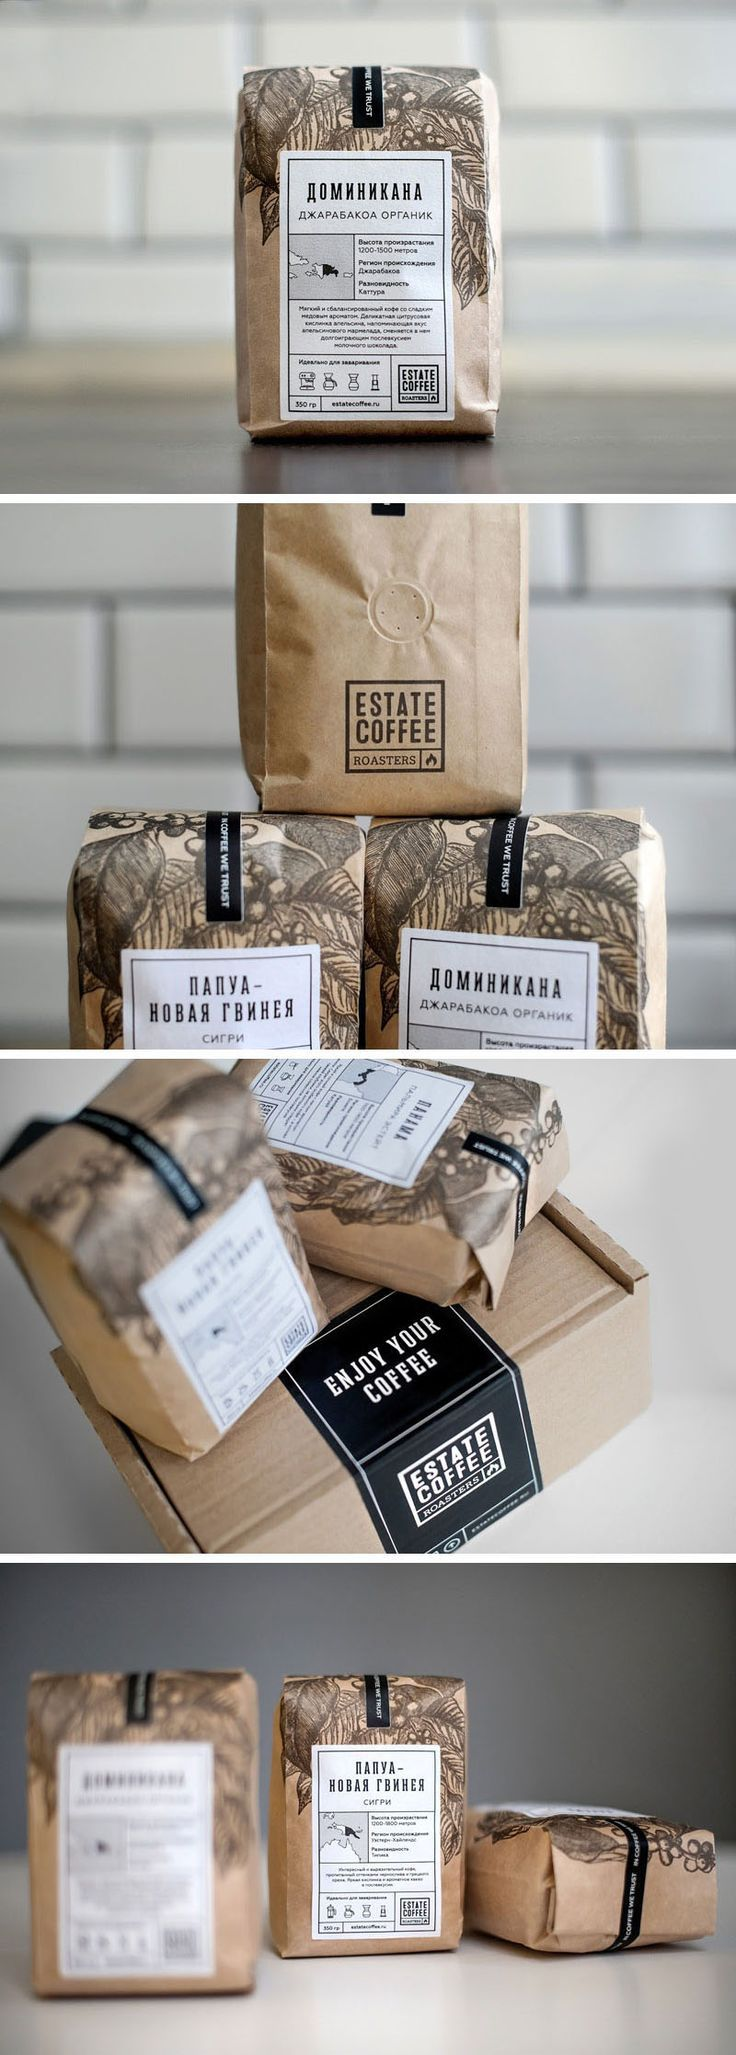 15 Creative Coffee Packaging Ideas For Graphic Designers - #coffee #Creative #Designers #Graphic #Ideas #packaging #teapackaging